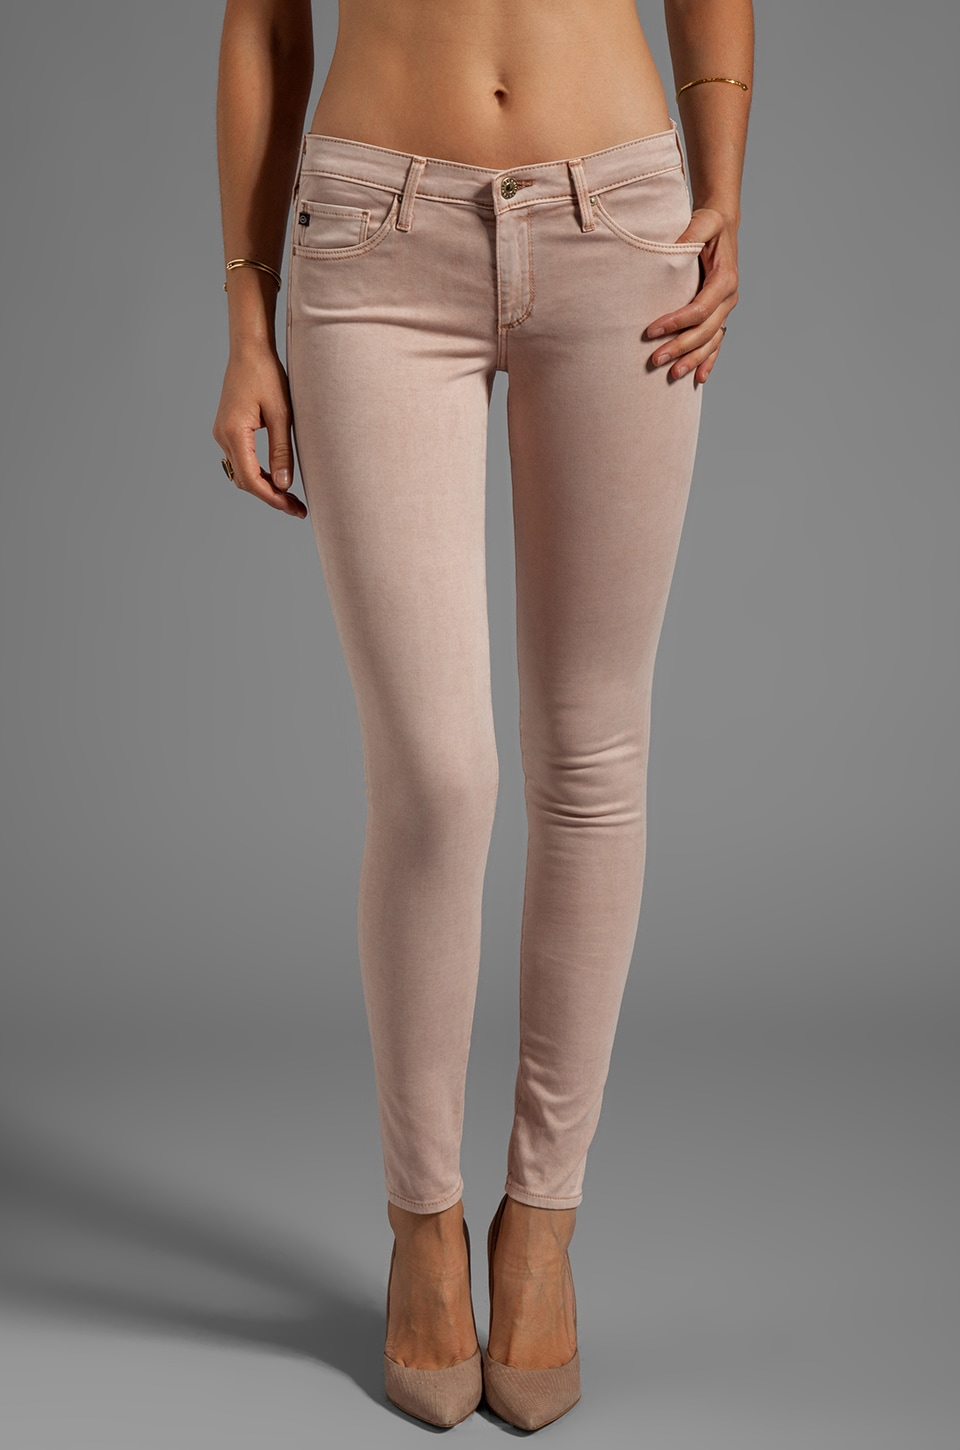 AG Adriano Goldschmied The Absolute Legging in Pigment Blush